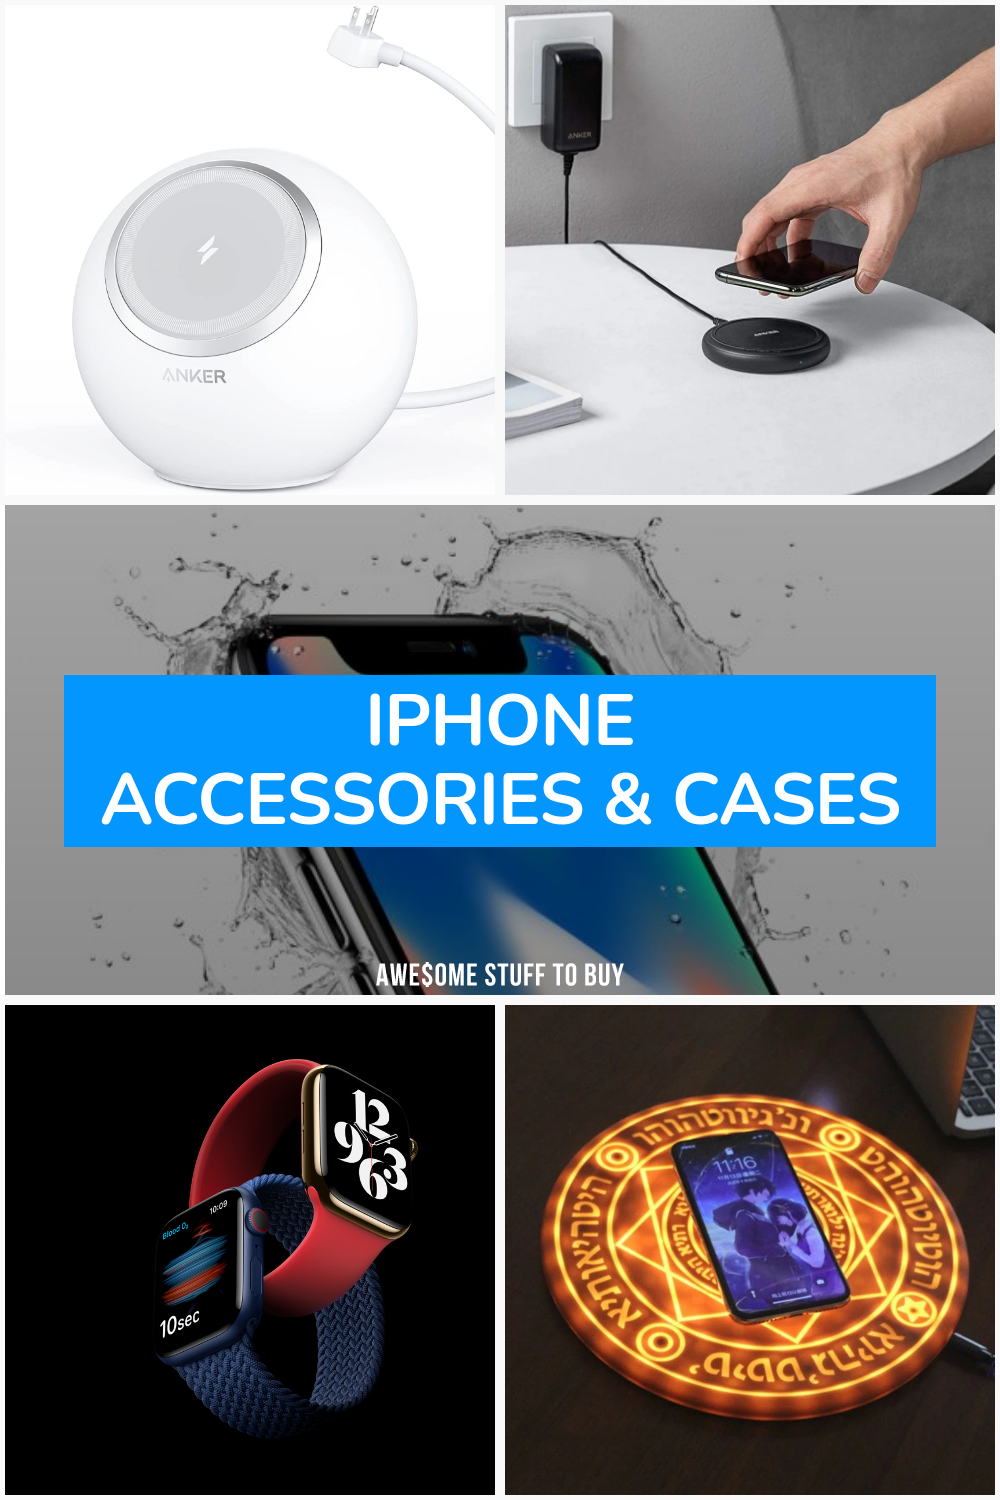 iPhone Accessories & Cases // Awesome Stuff to Buy